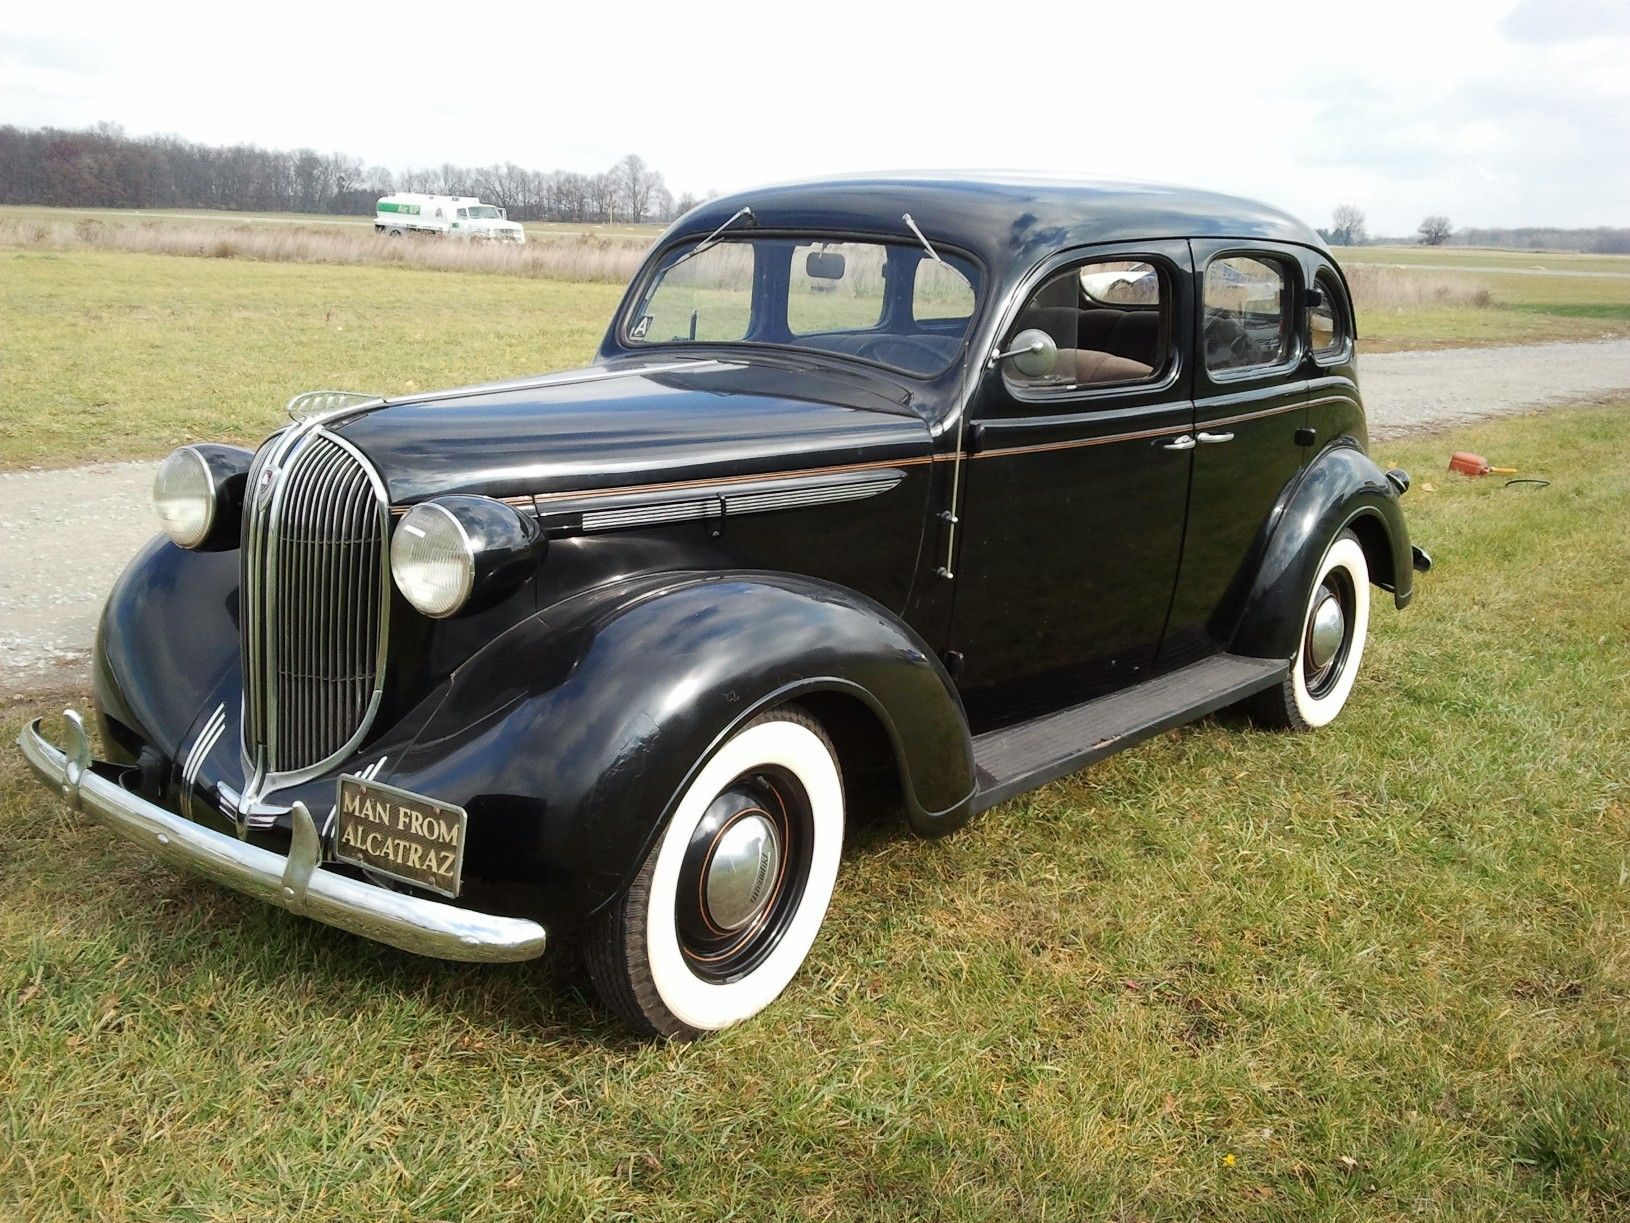 1938 Plymouth P6 Deluxe Four Door Touring Sedan This Is A Super